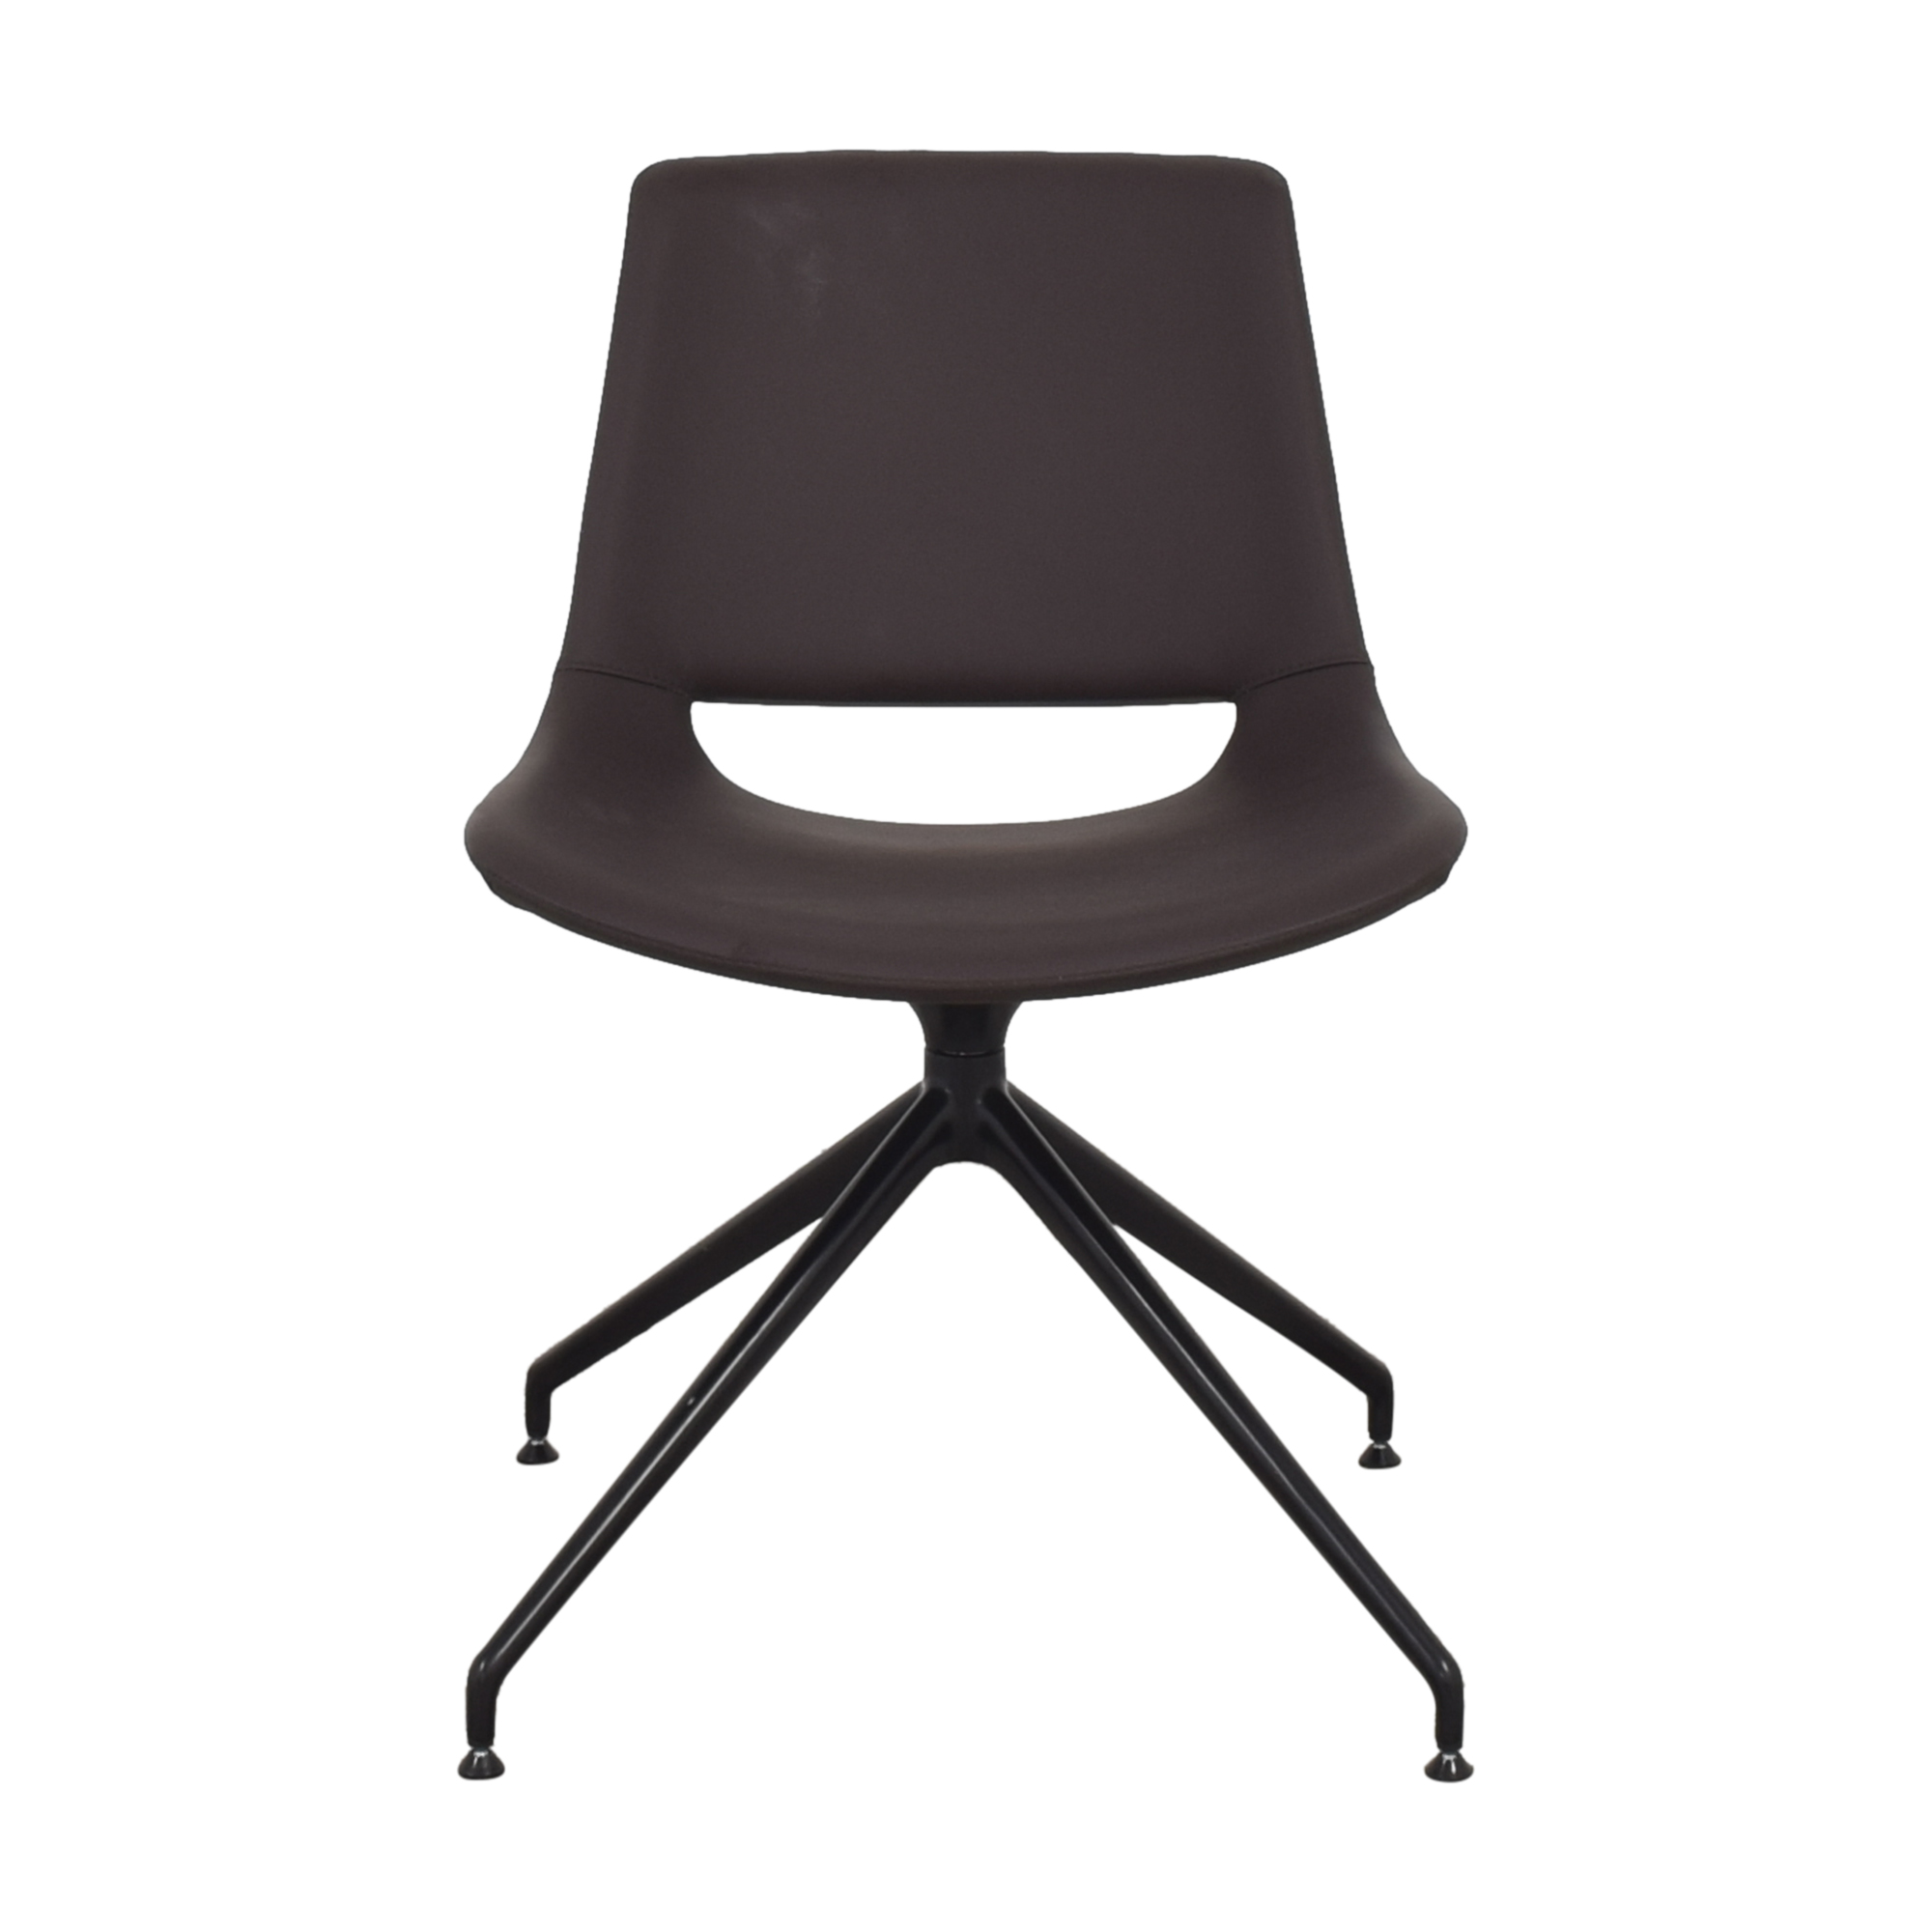 Arper Arper Palm Trestle Swivel Chair coupon